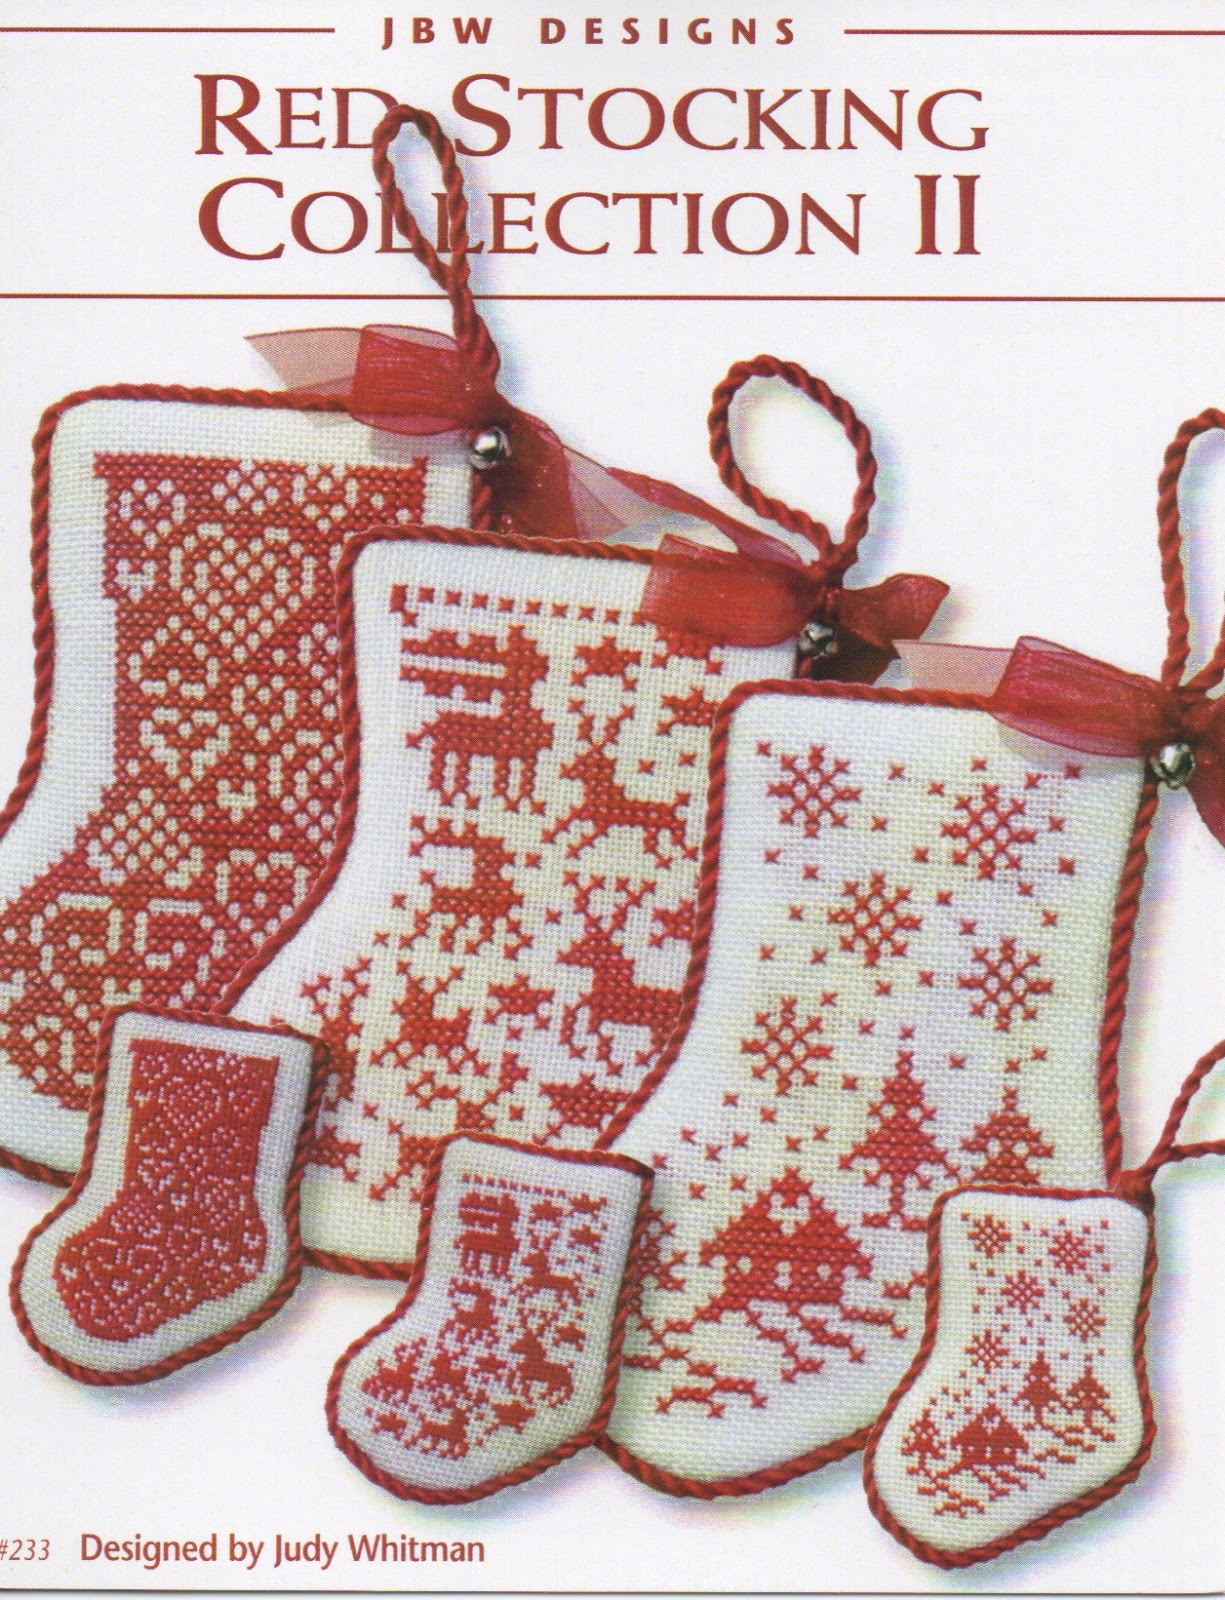 #233 Red Stocking Collection 11